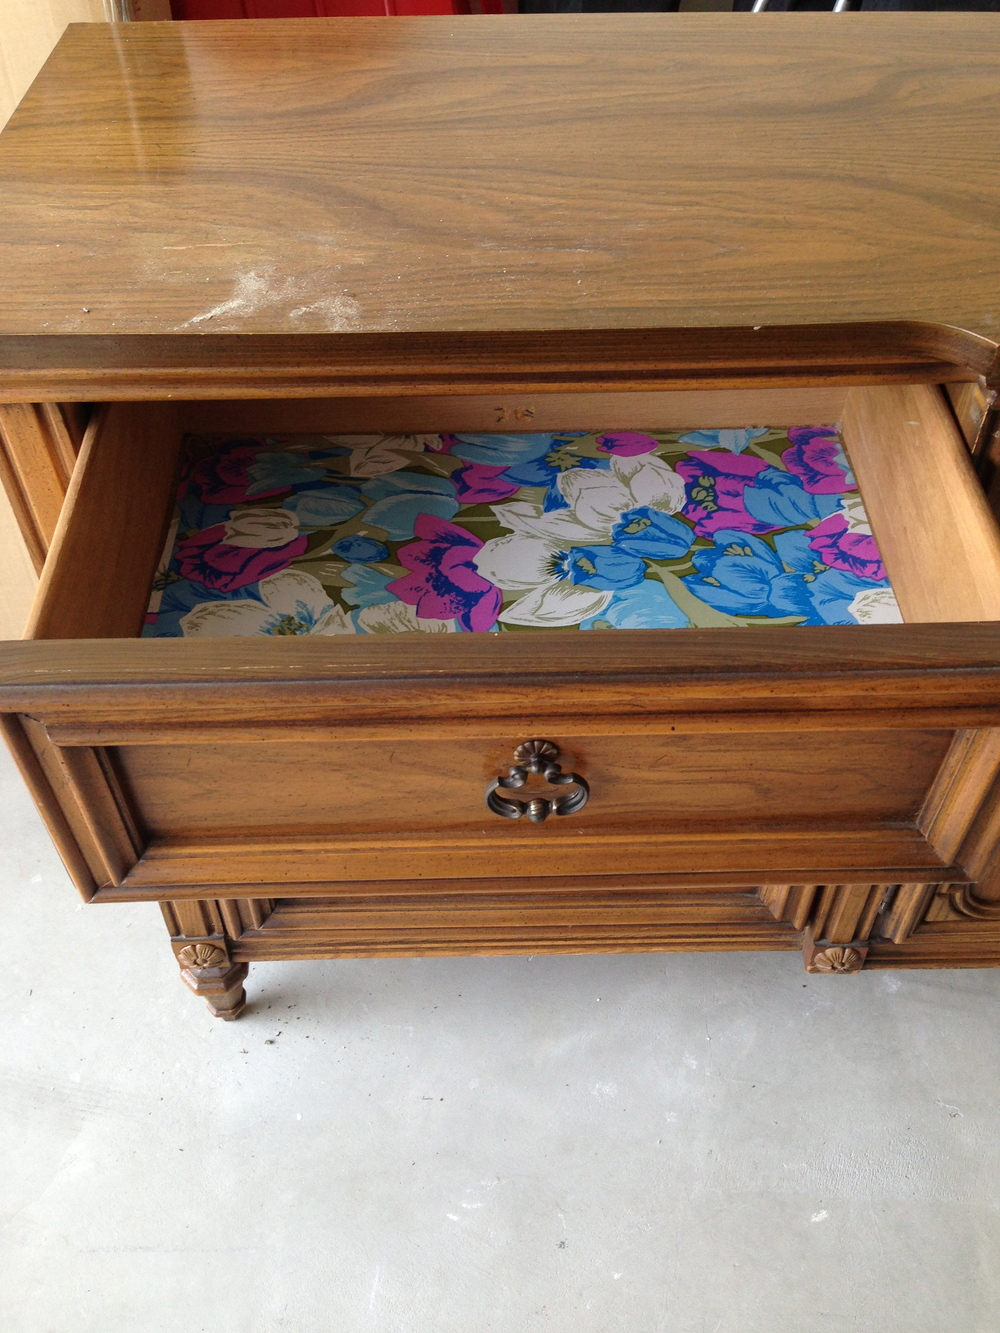 The left side of the dresser had 3 small drawers